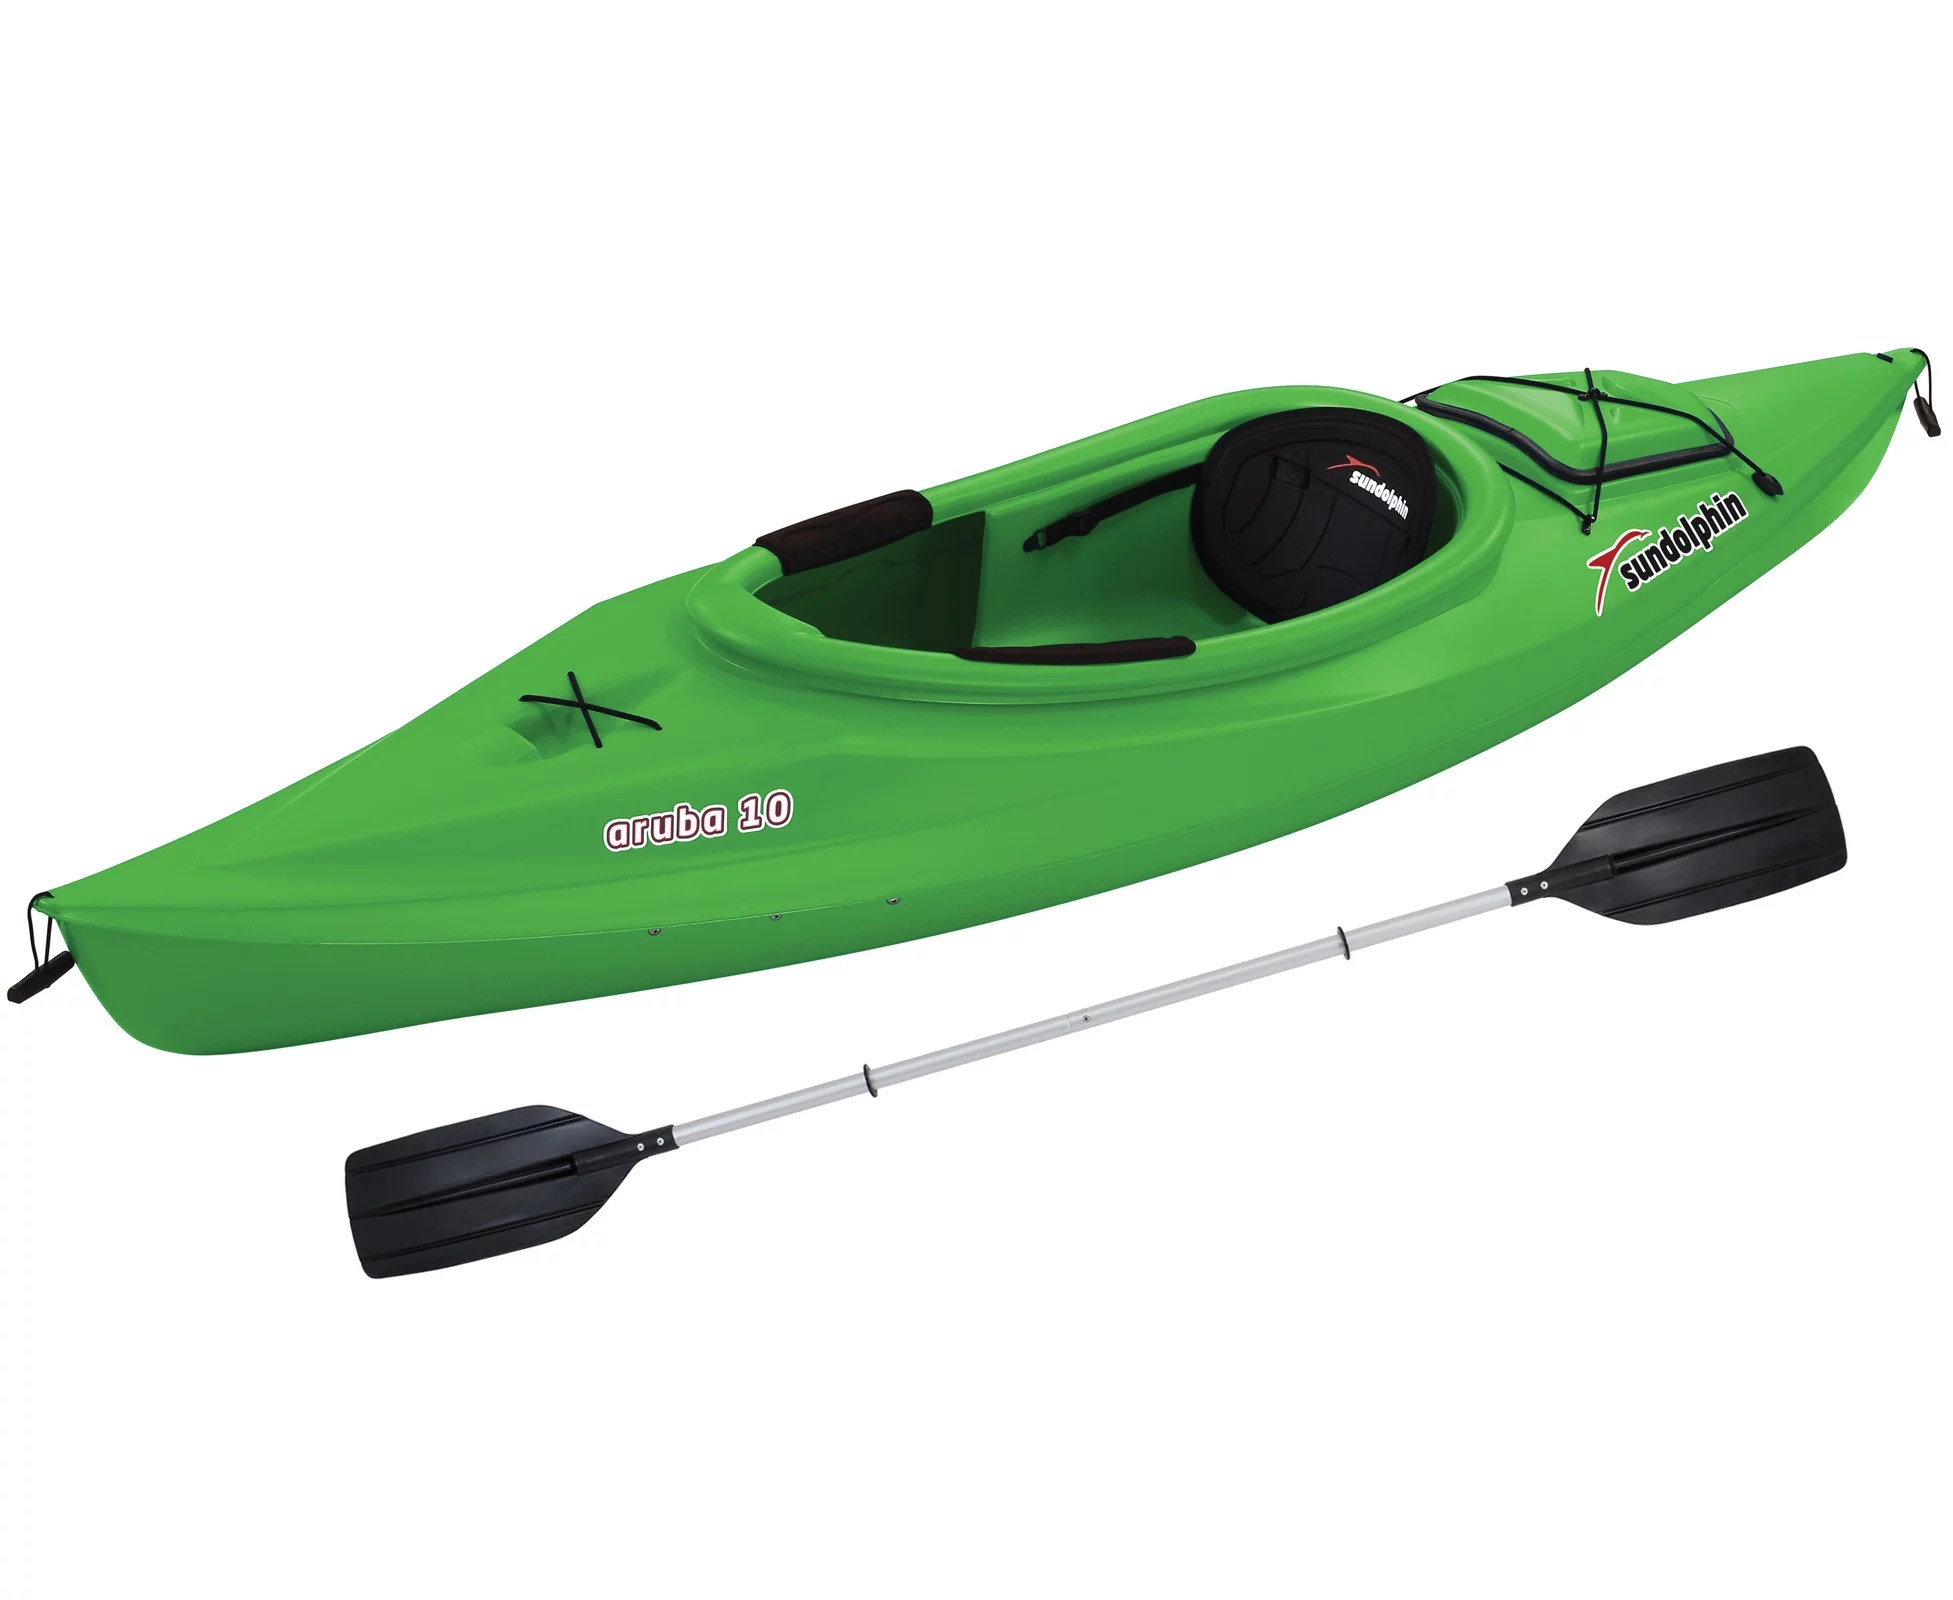 Kayak Sun Dolphin Aruba 10 Sit In Kayak Lime Paddle Included